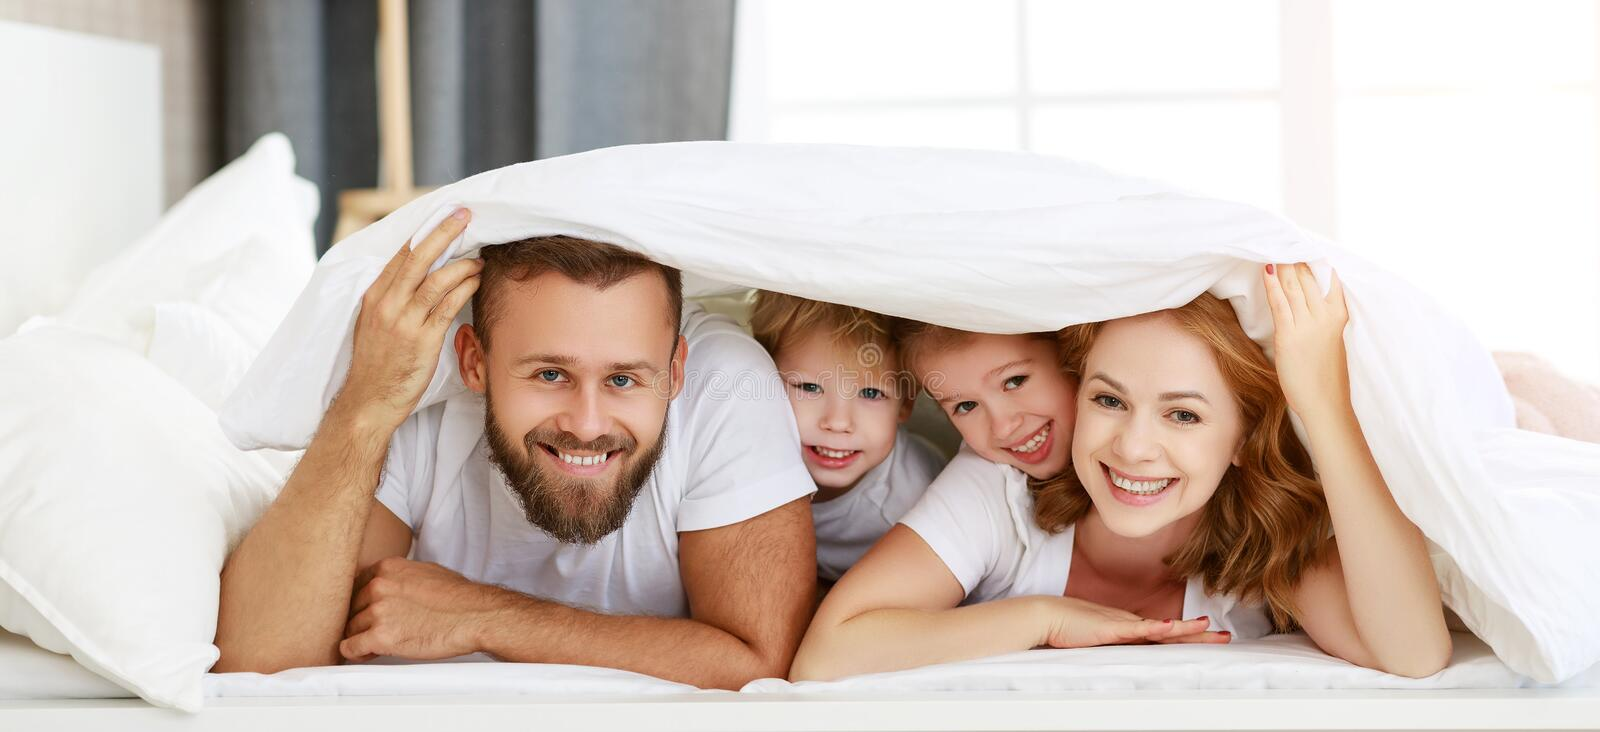 Happy family mother, father and children laughing, playing and smiling in bed   at home royalty free stock images